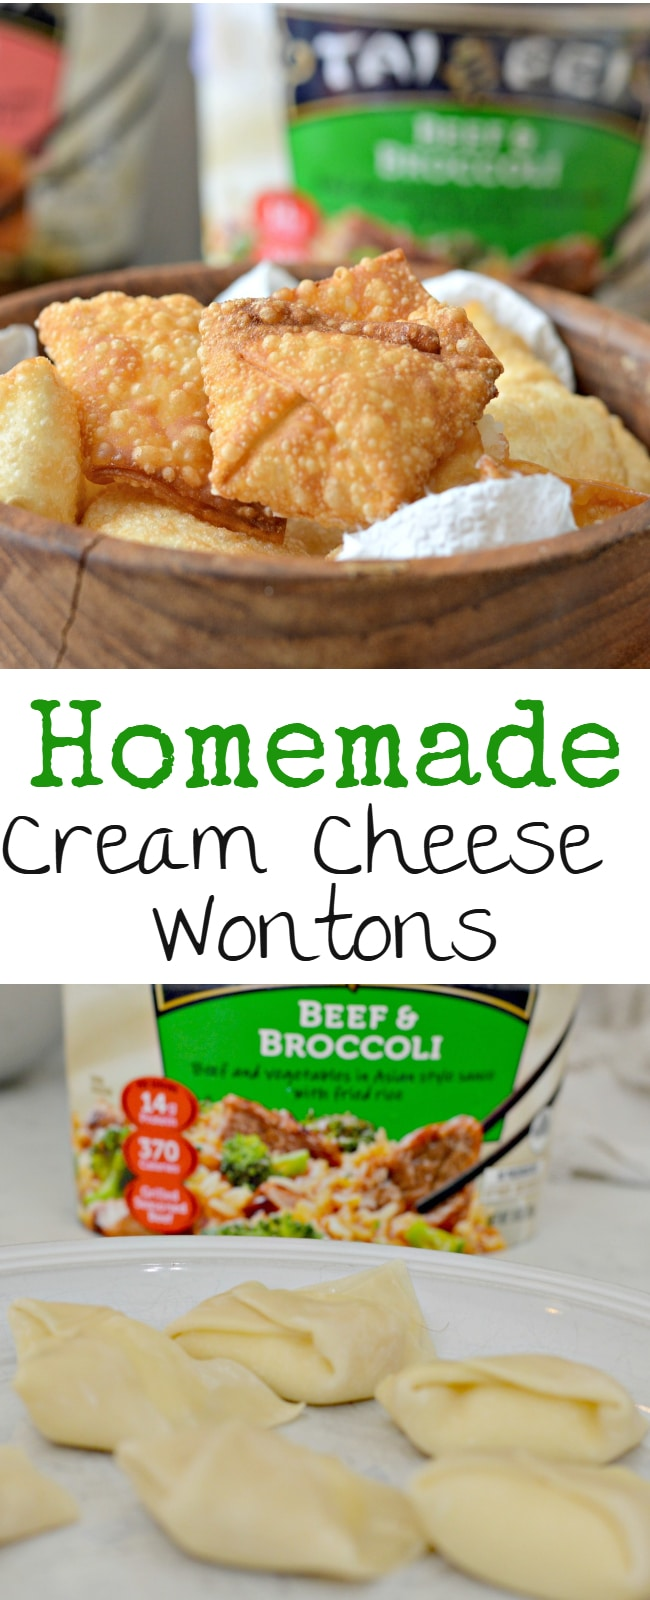 These Homemade Cream Cheese Wontons are easy to make and are perfect when you are in a hurry.